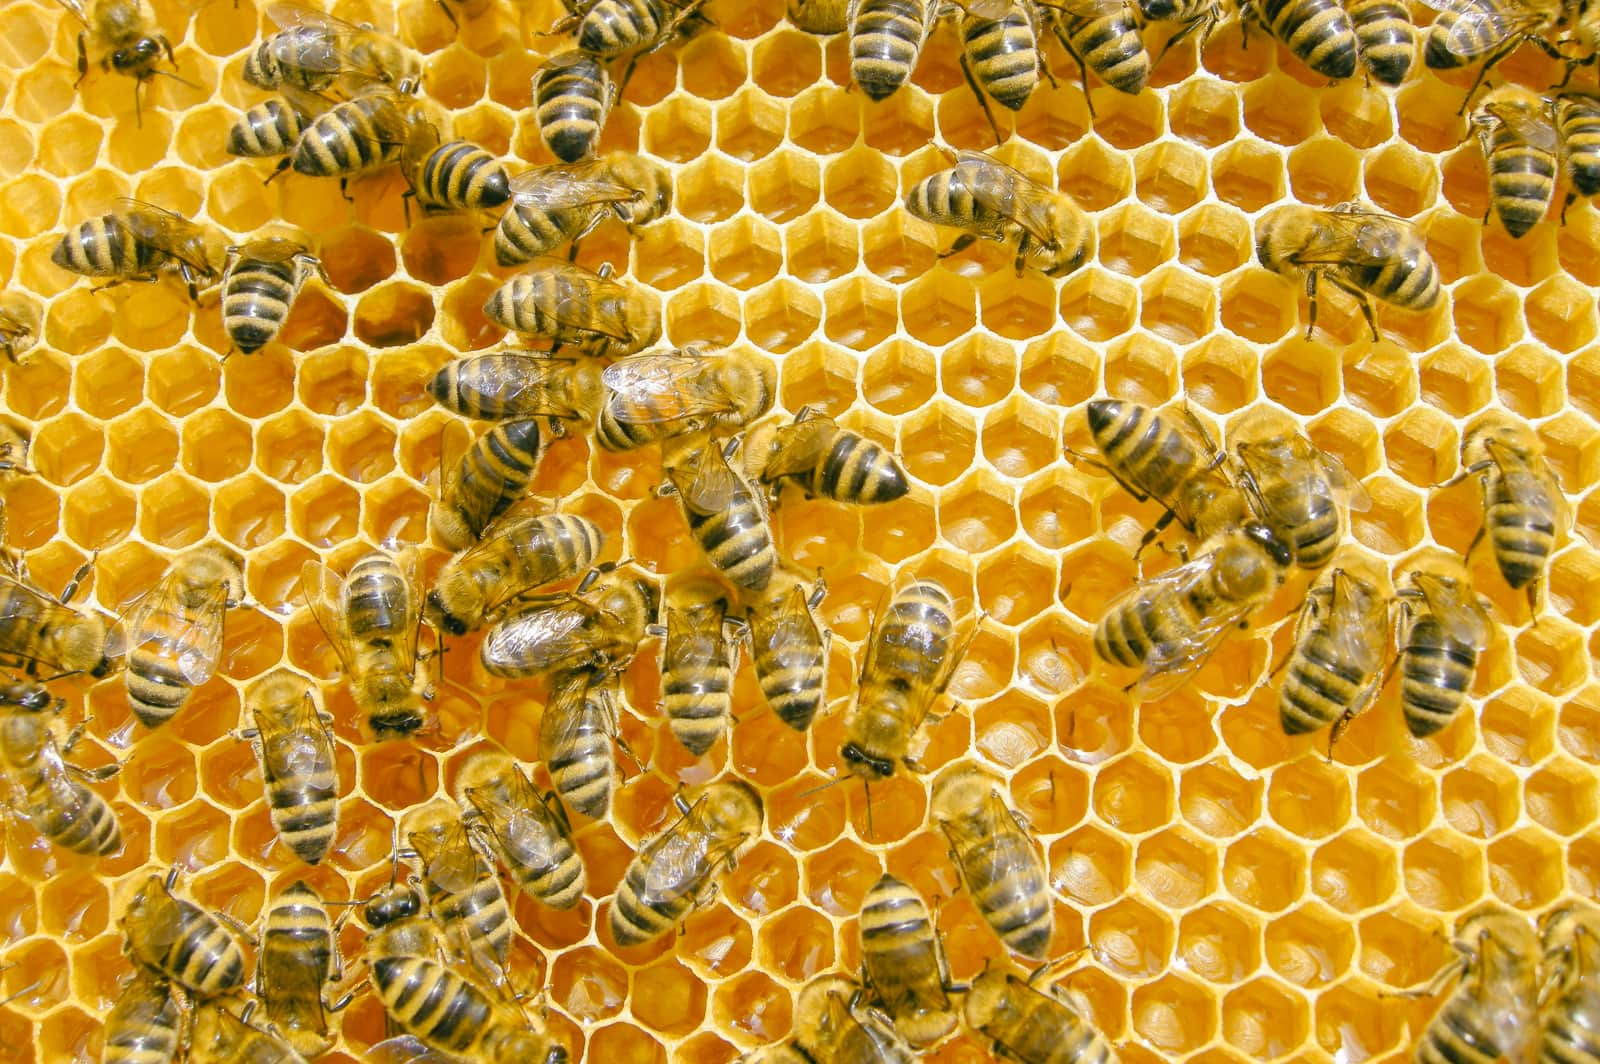 Beekeeping And Honey Production Photo